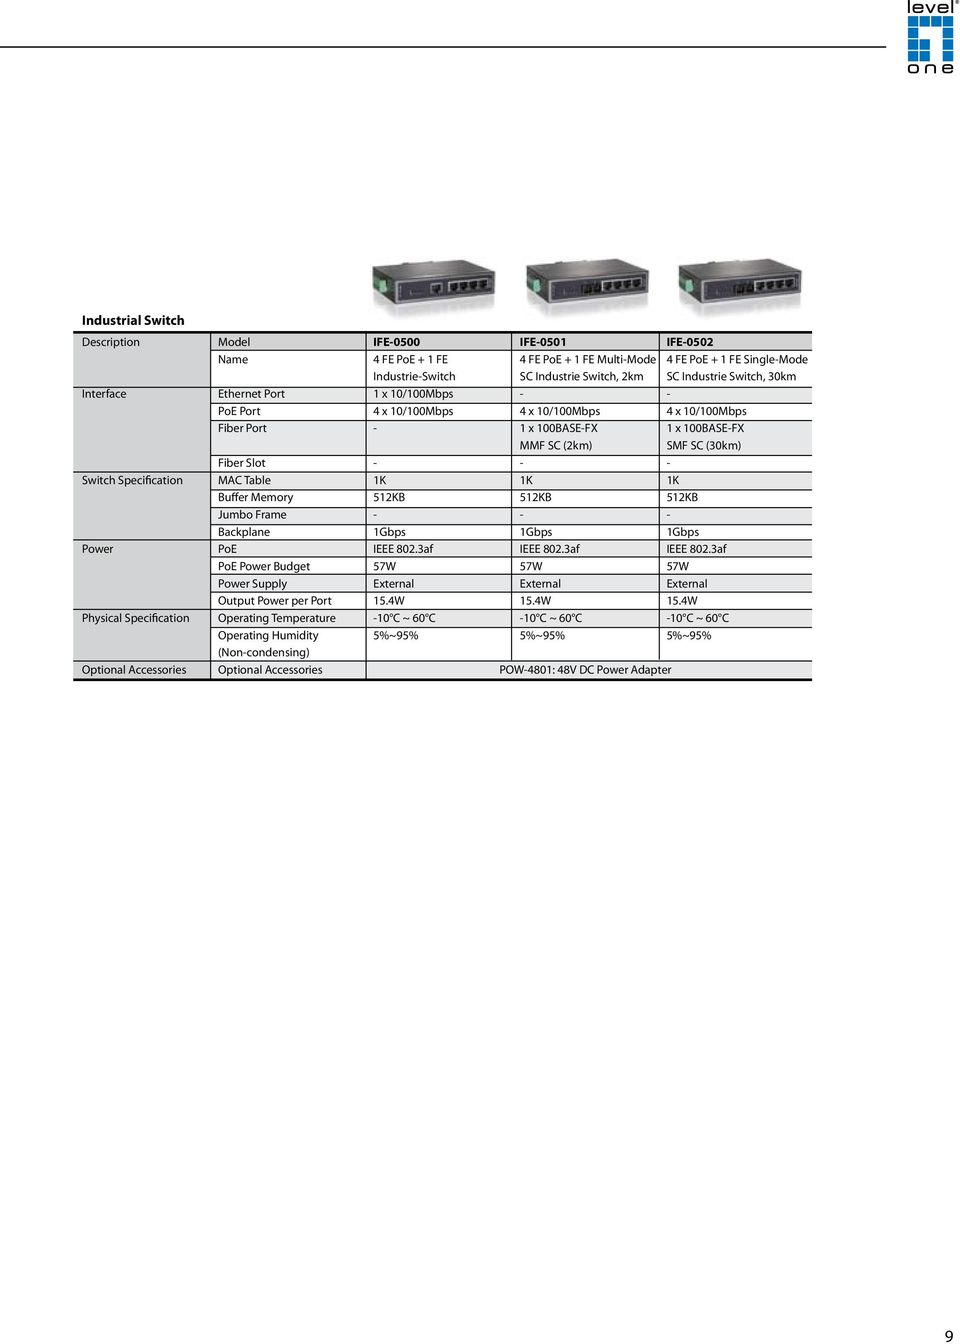 Table 1K 1K 1K Buffer Memory 512KB 512KB 512KB Jumbo Frame Backplane 1Gbps 1Gbps 1Gbps Power PoE IEEE 802.3af IEEE 802.